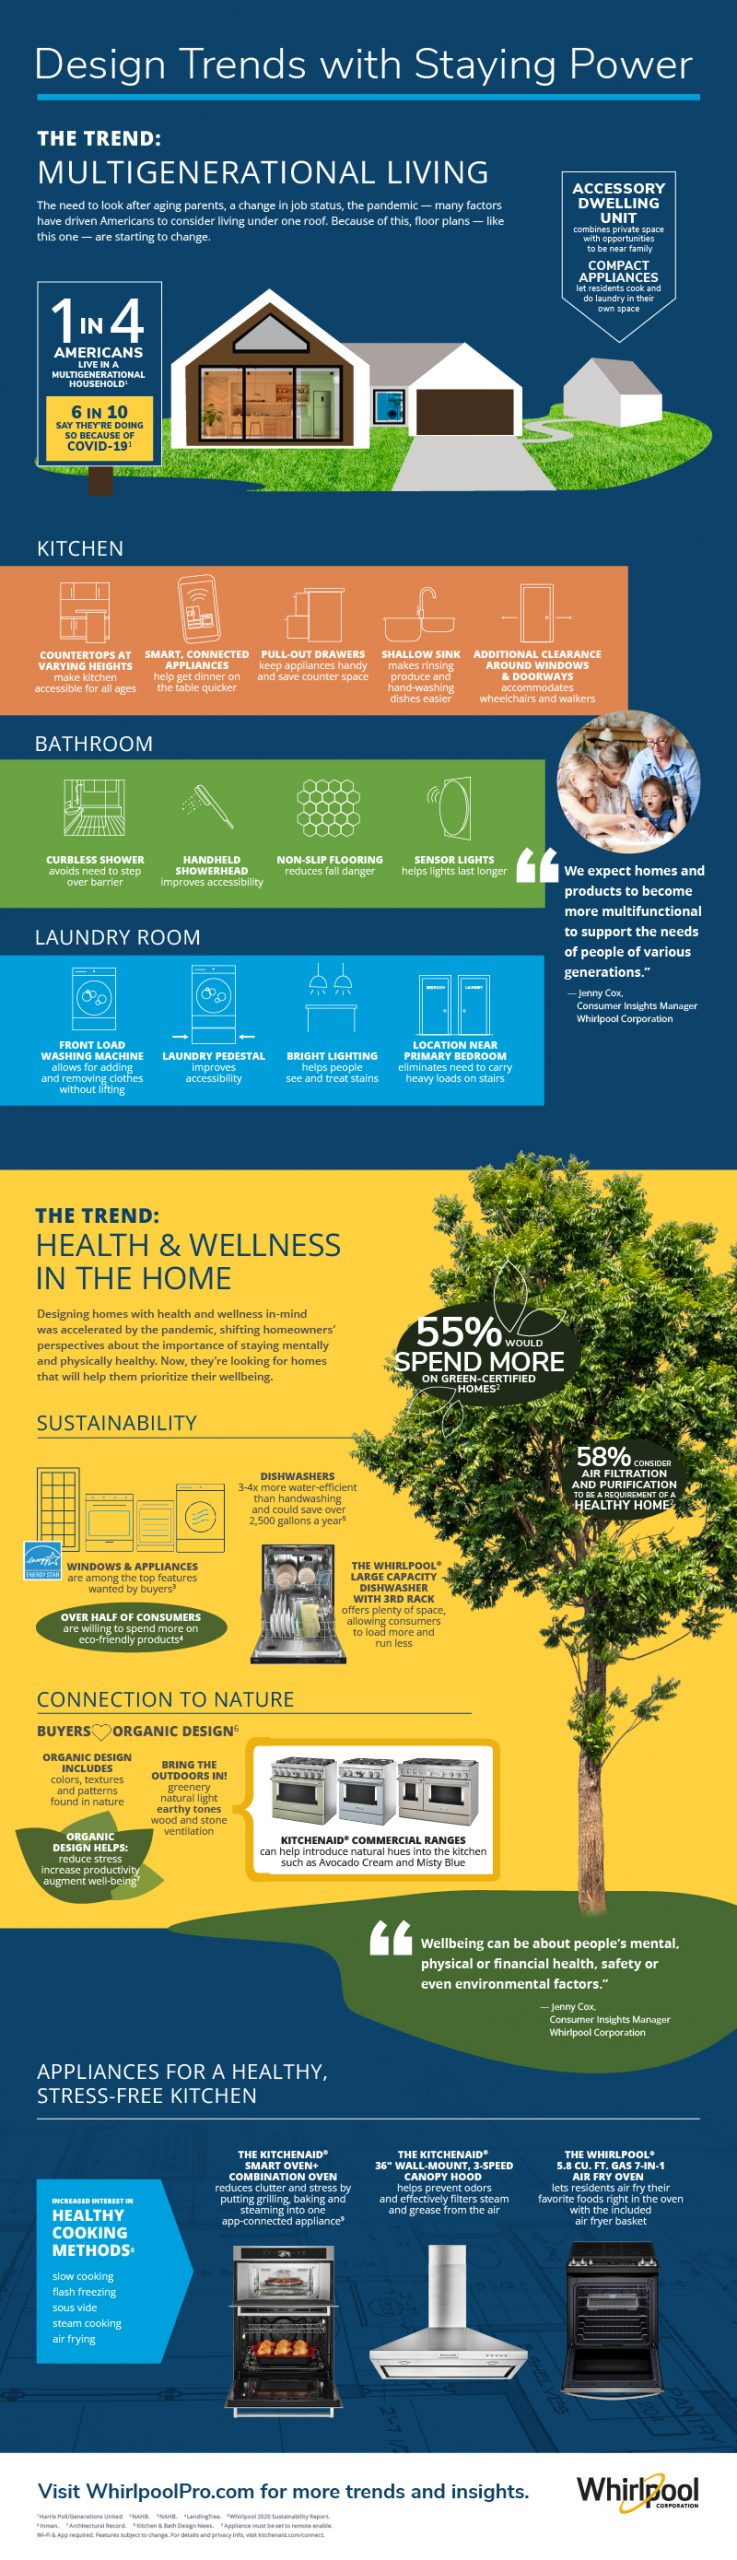 Design Trends with Staying Power Infographic